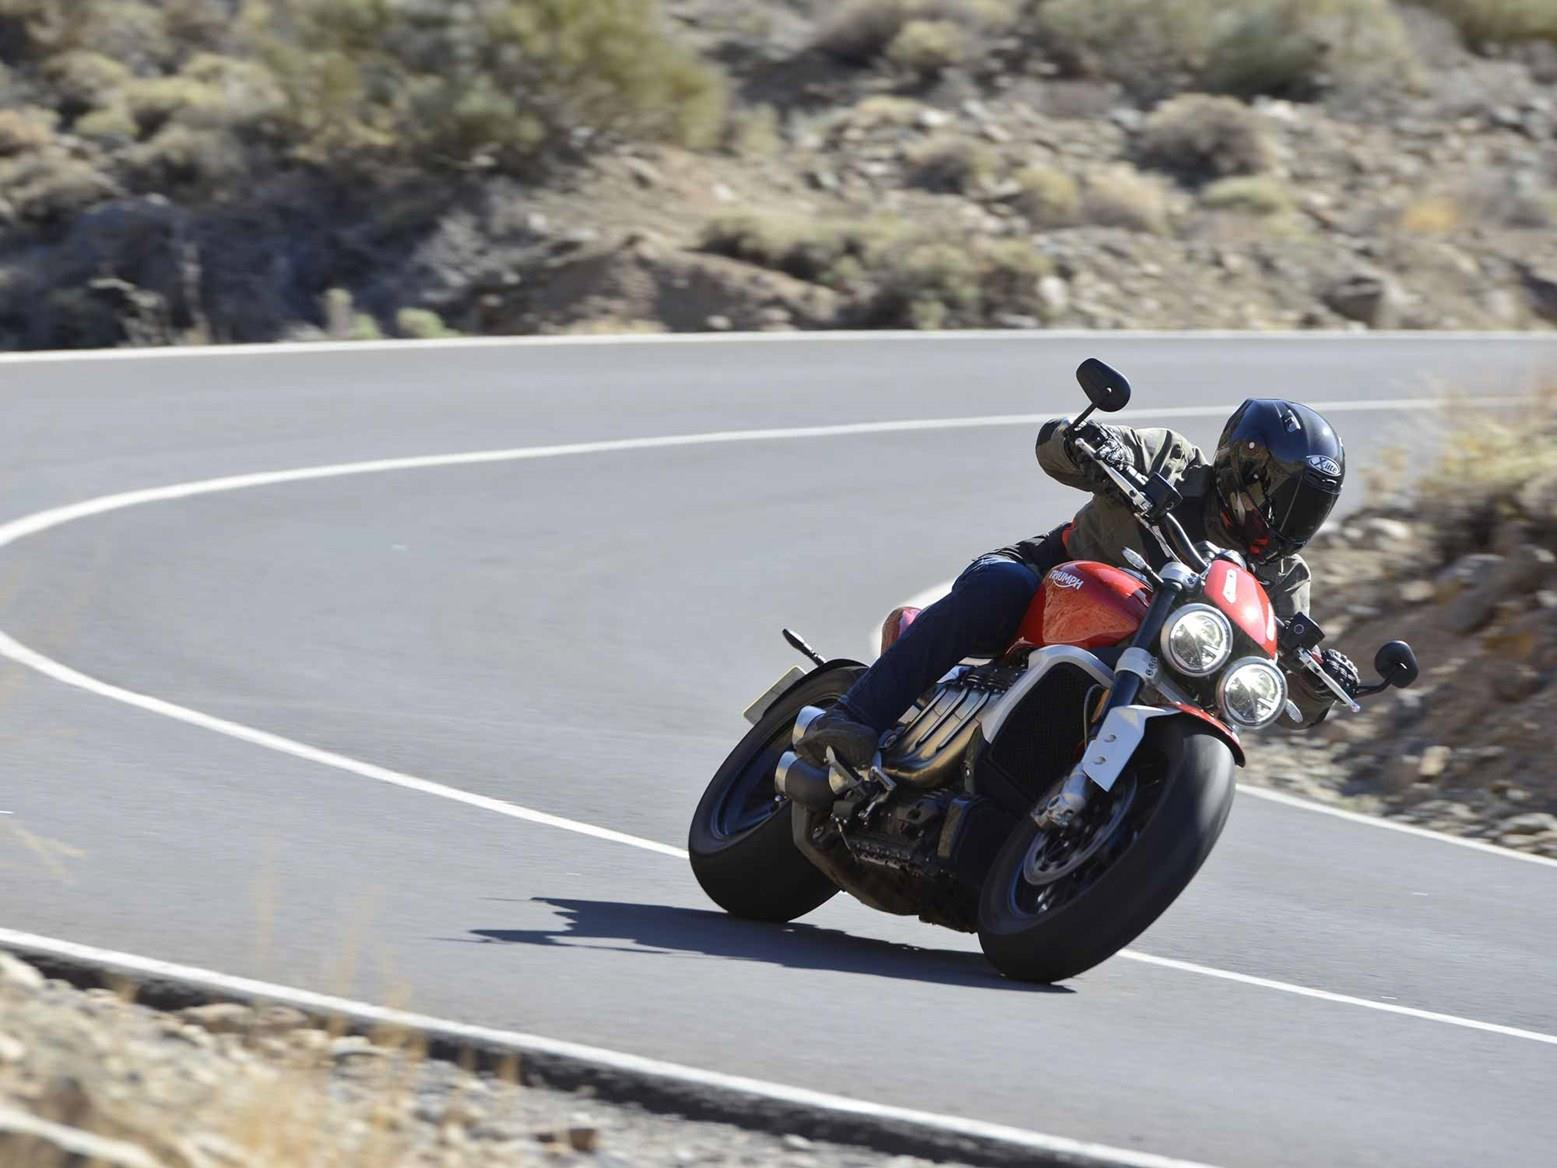 Actual rocket science: The geometry magic that helps Triumph's Rocket 3 handle so well